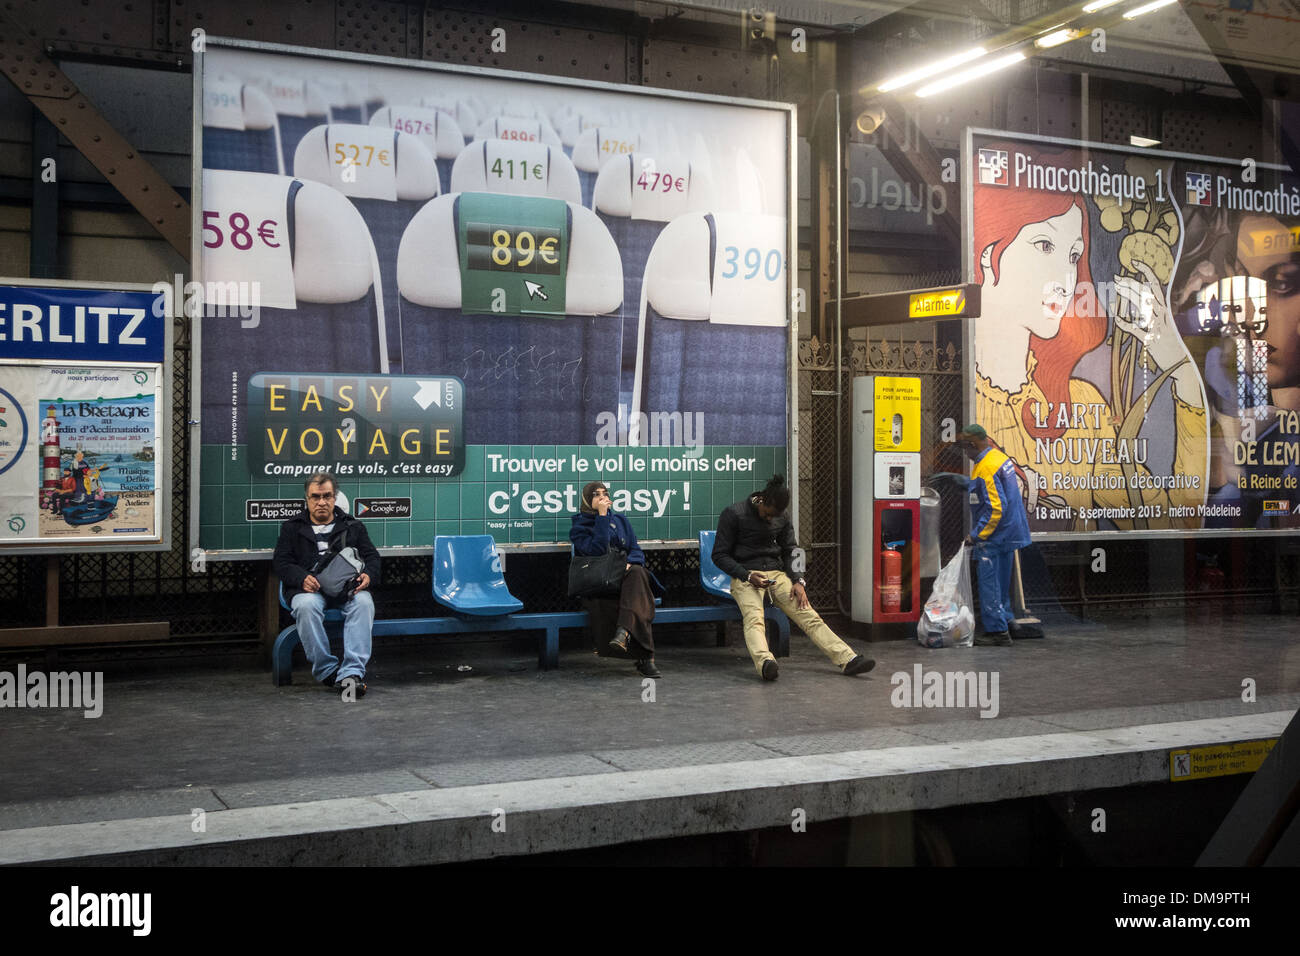 PASSENGERS IN THE AUSTERLITZ STATION WAITING ON THE QUAY FOR THE METRO, PARIS, FRANCE - Stock Image